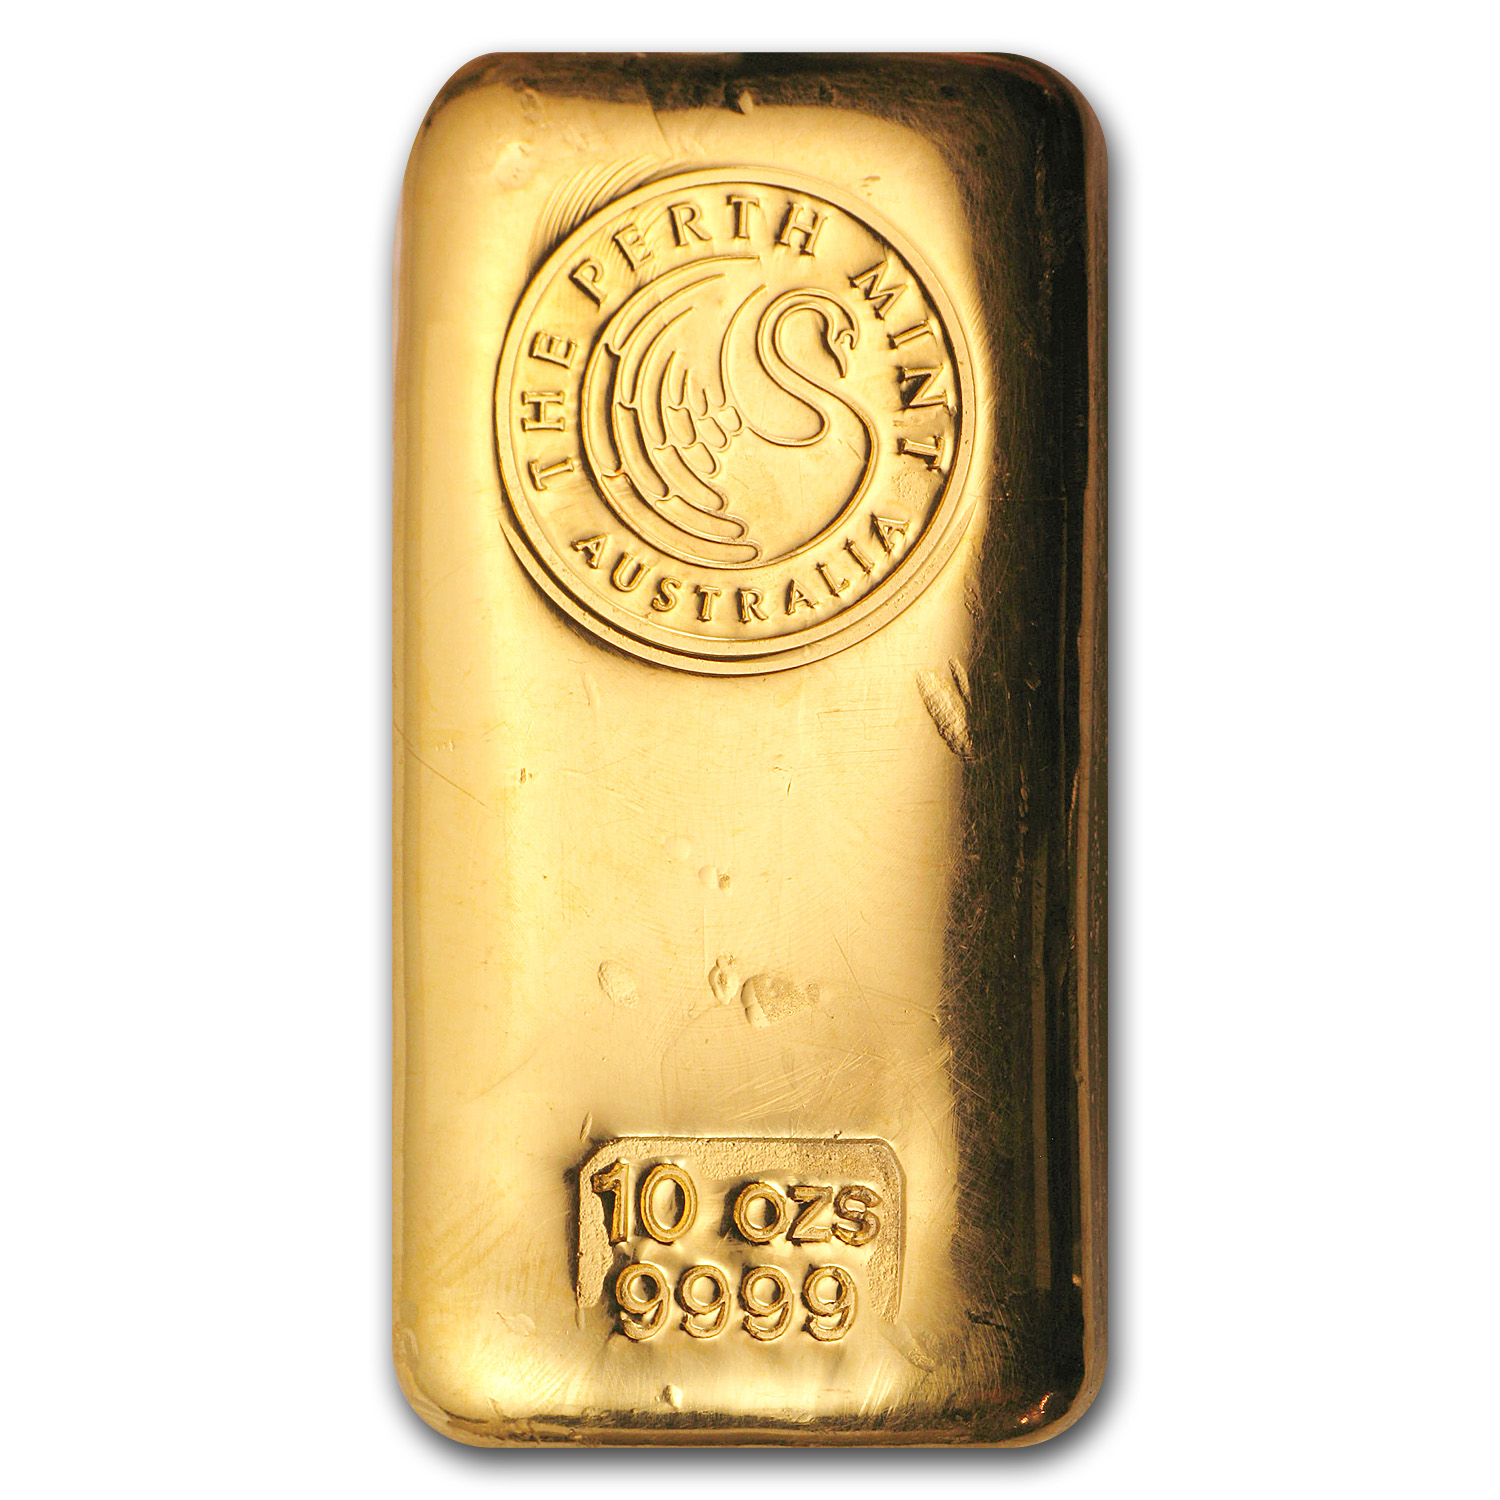 10 oz Gold Bar - Perth Mint (Poured, Loaf-Style)